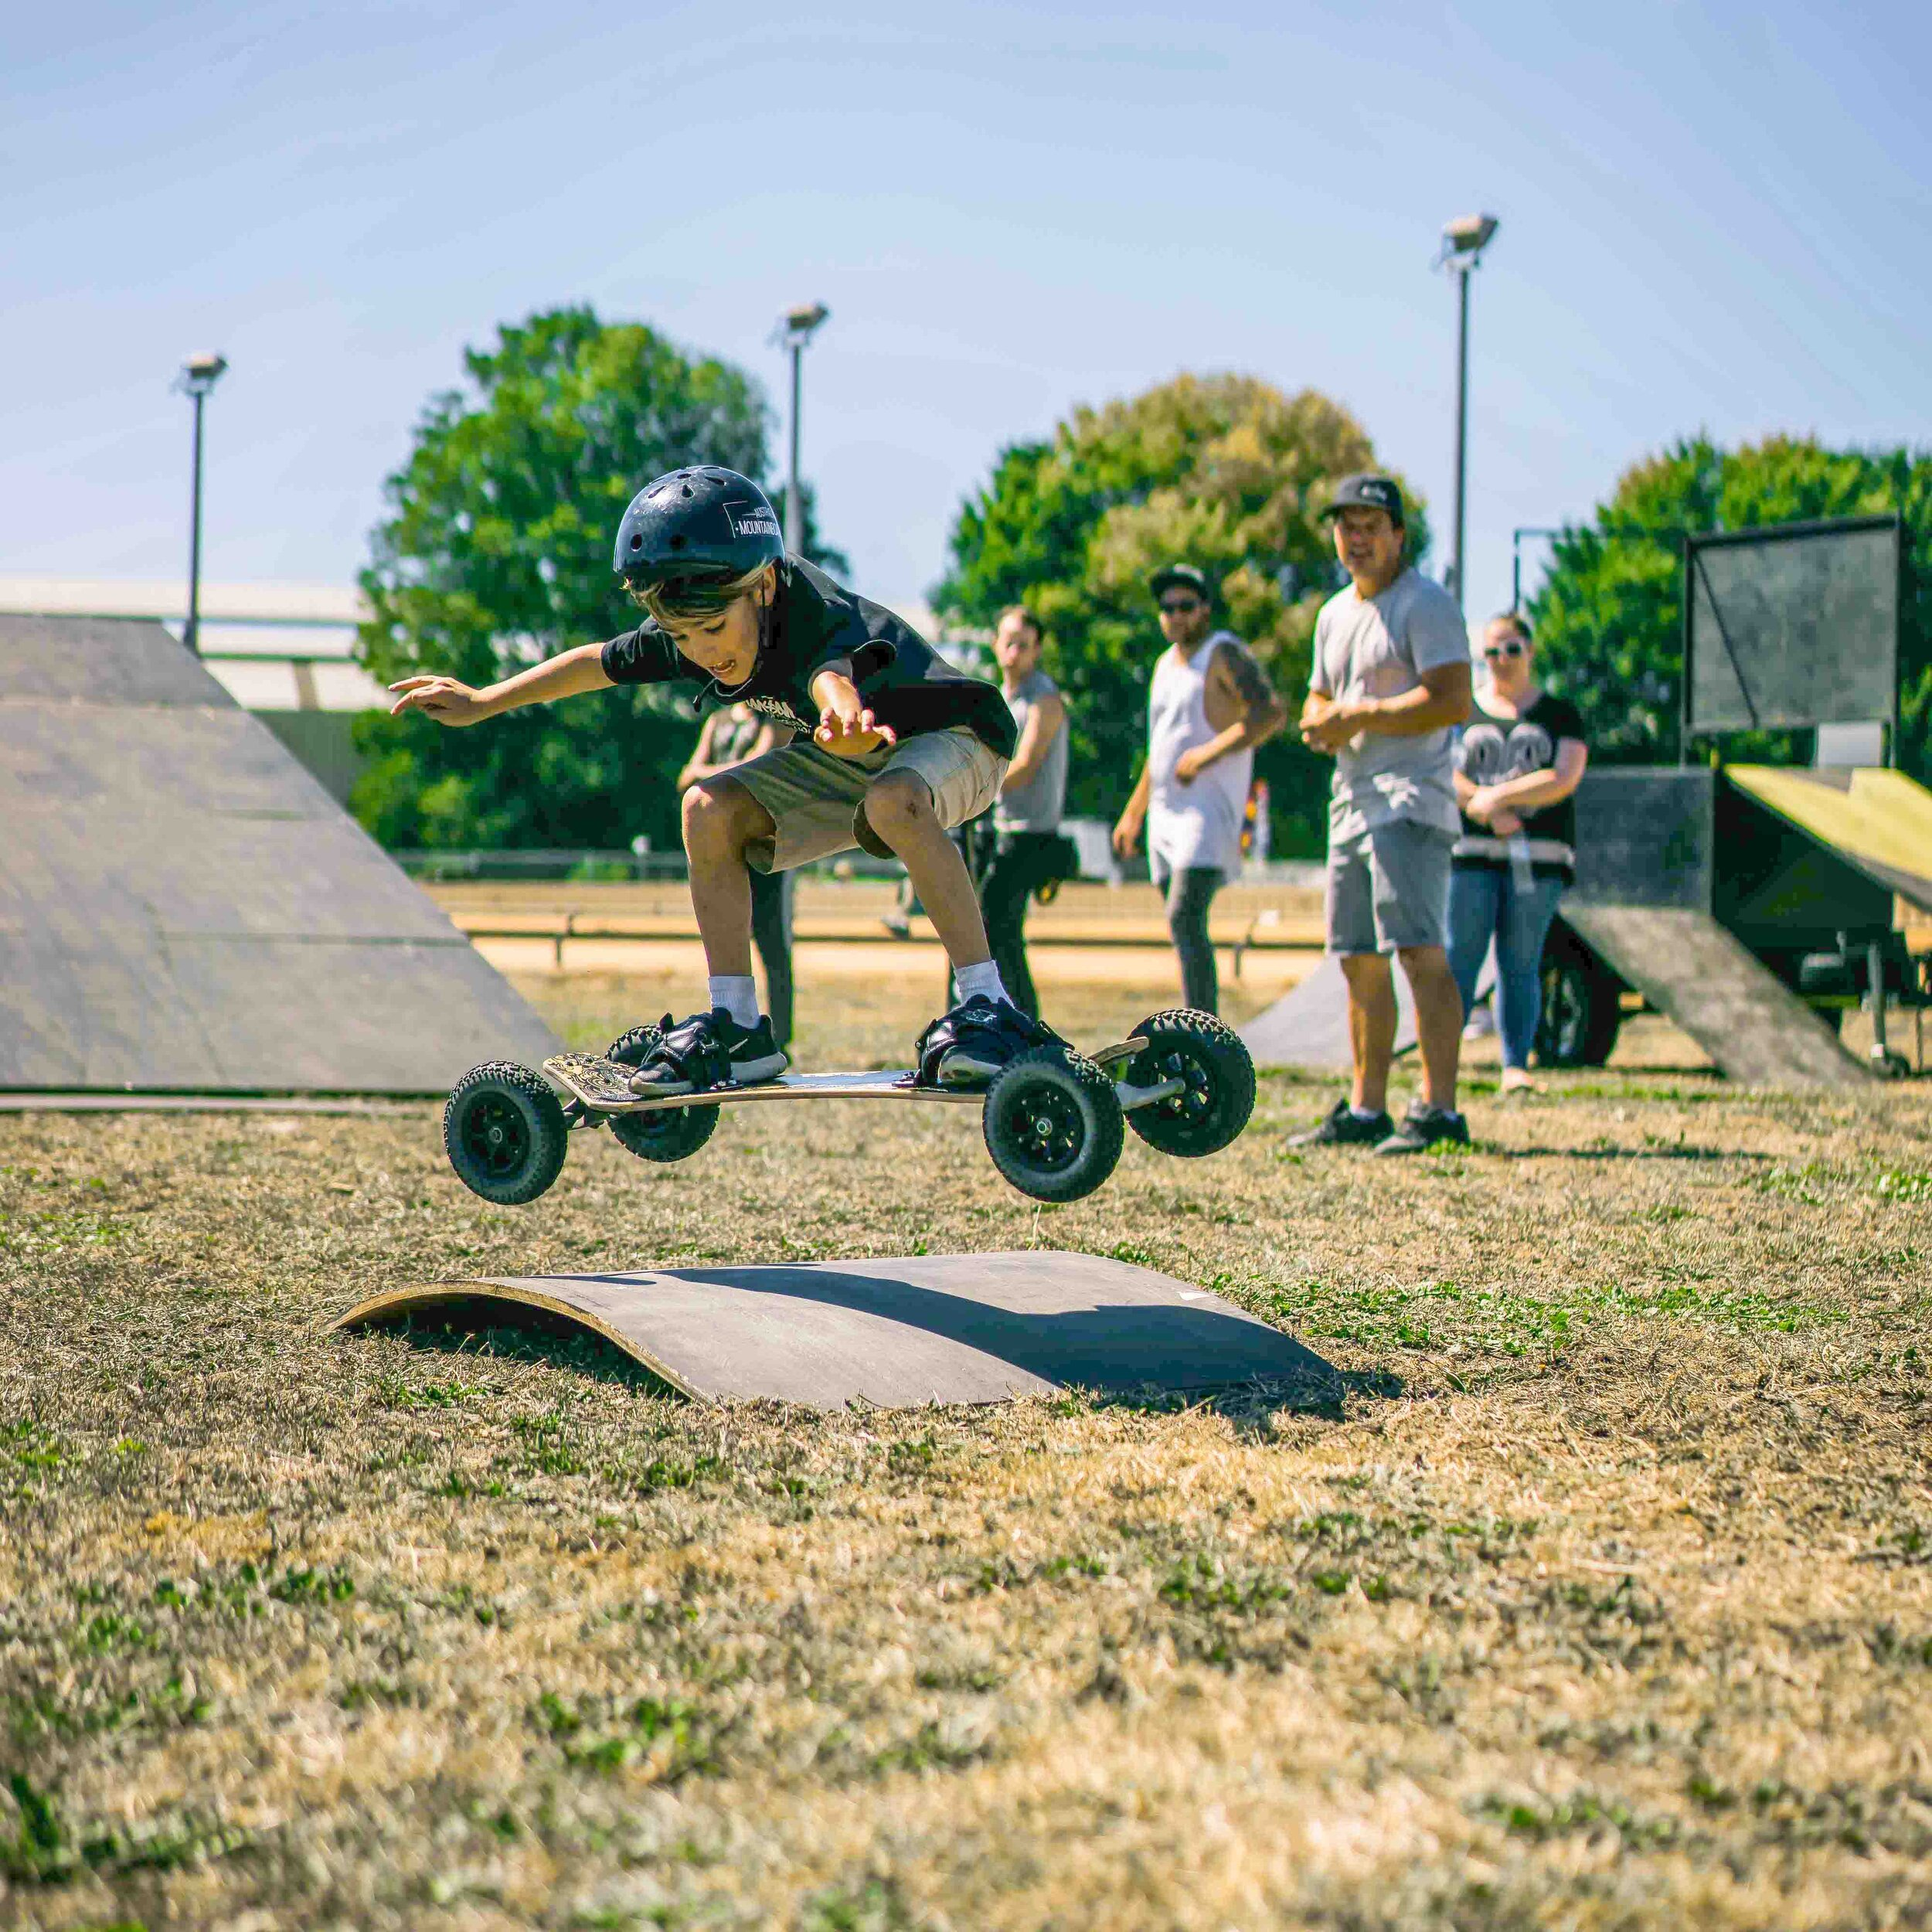 Knox - Learn to Mountainboard with James at Llwellyn Park in Wantirna South (Llwellyn Park drive Entrance). Weekdays from 4:30pm-6:30pm and Saturday from 10am-12pm.Group Lessons$30.00pp (Minimum of 2 people)1 Hour LessonPrivate Lessons$60pp1 Hour LessonEmail ausmountainboarders@gmail for bookings. Closed toe shoes must be worn. We can supply helmet + board on request. Under 18 must have guardian sign waiver. Prior to lesson download and complete mandatory WAIVER BY CLICKING HERE